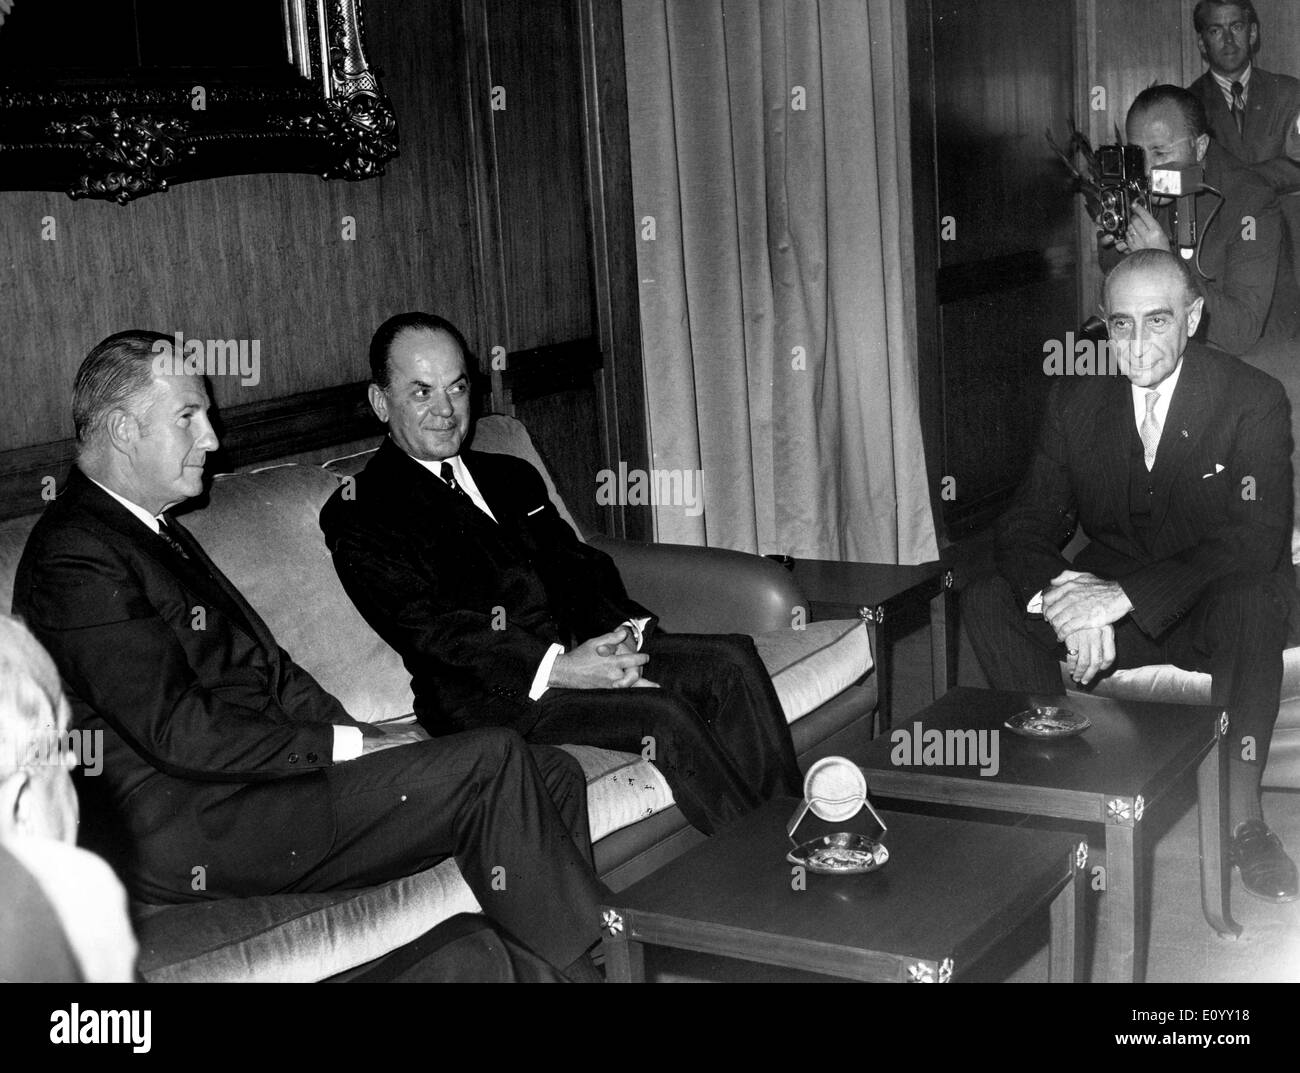 Oct 16, 1971; Athens, Greece; American Vice President Mr. Agnew arrived in Athens on a state visit. At the airport he was met by Greek Prime Minister Mr. George Papadopoulos and members of the Greek Cabinet. The picture shows Mr. SPIRO THEODORE AGNEW and Mr. GEORGE PAPADOPOULOS after their first meeting in the Office. - Stock Image